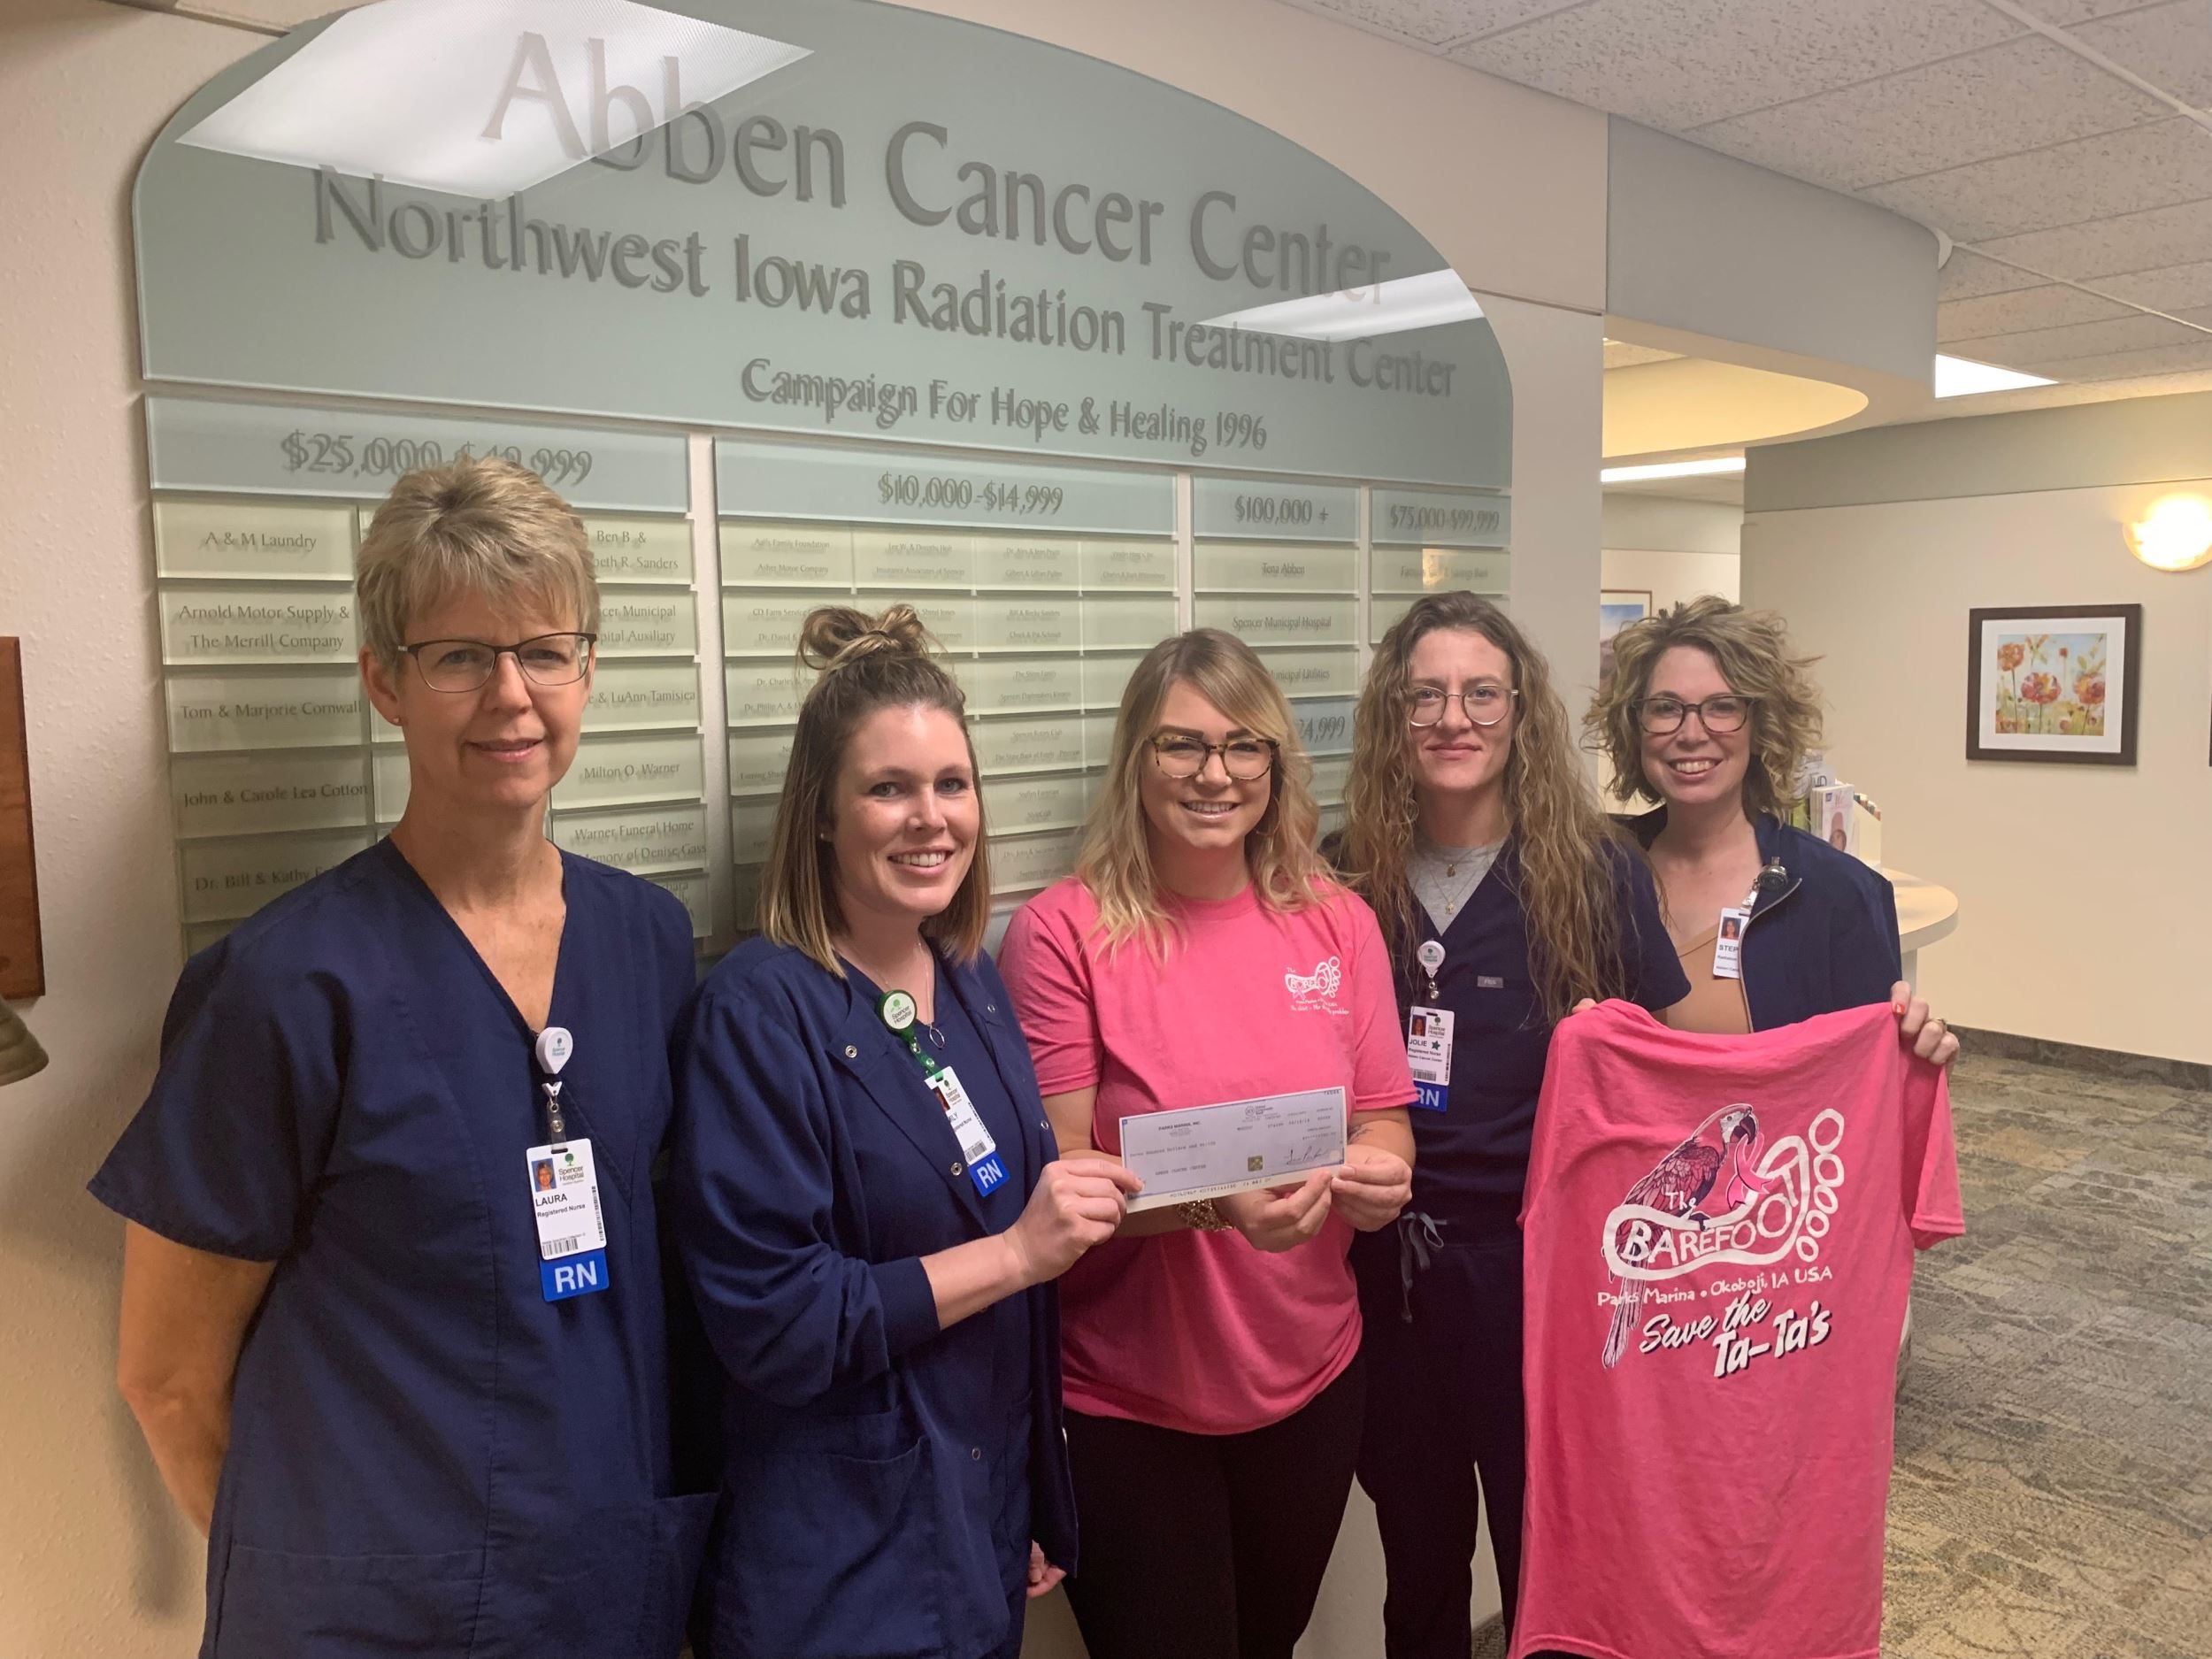 Parks Marina & The Barefoot Bar donate to Abben Cancer Center